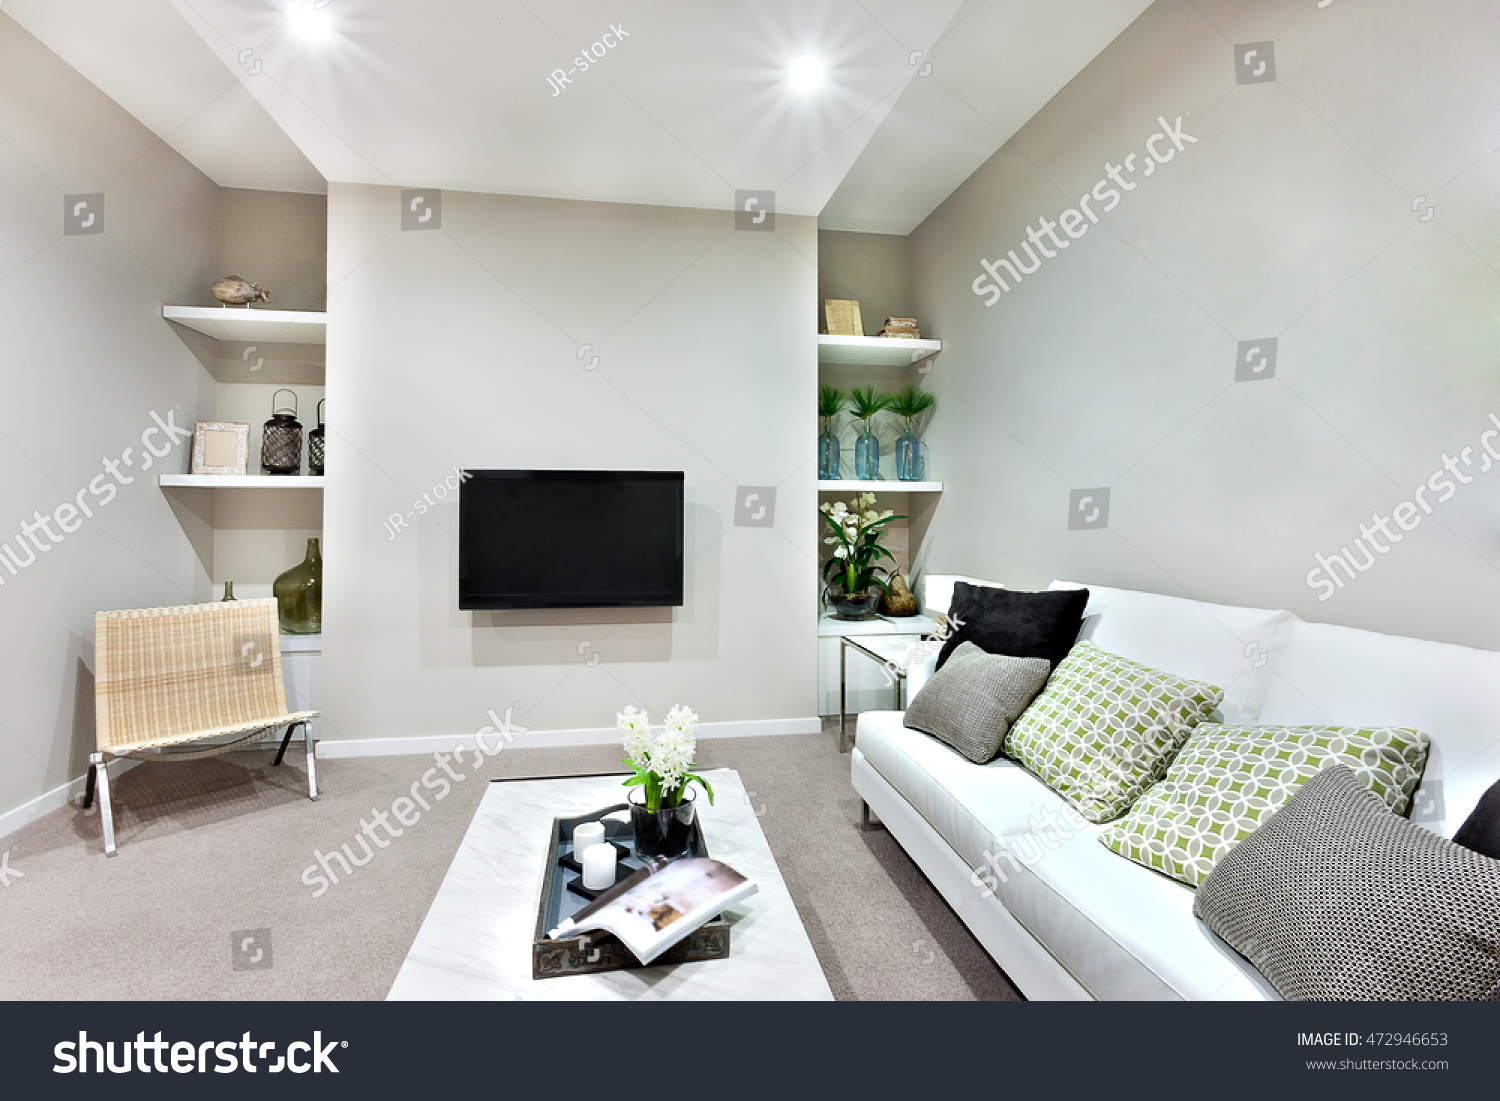 Close View Modern Living Room White Stock Photo & Image (Royalty ...